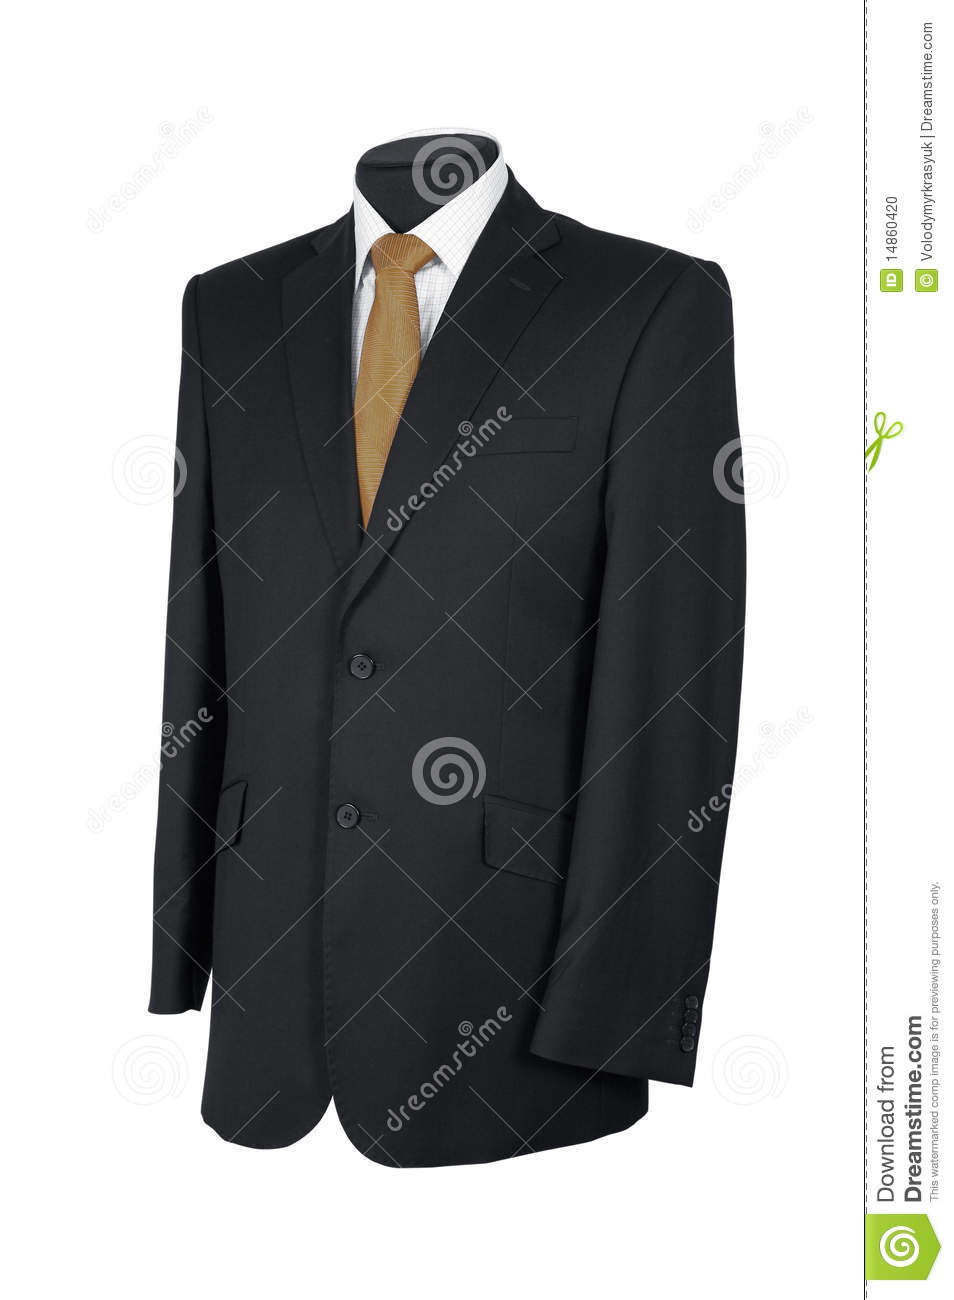 Man s suit isolated